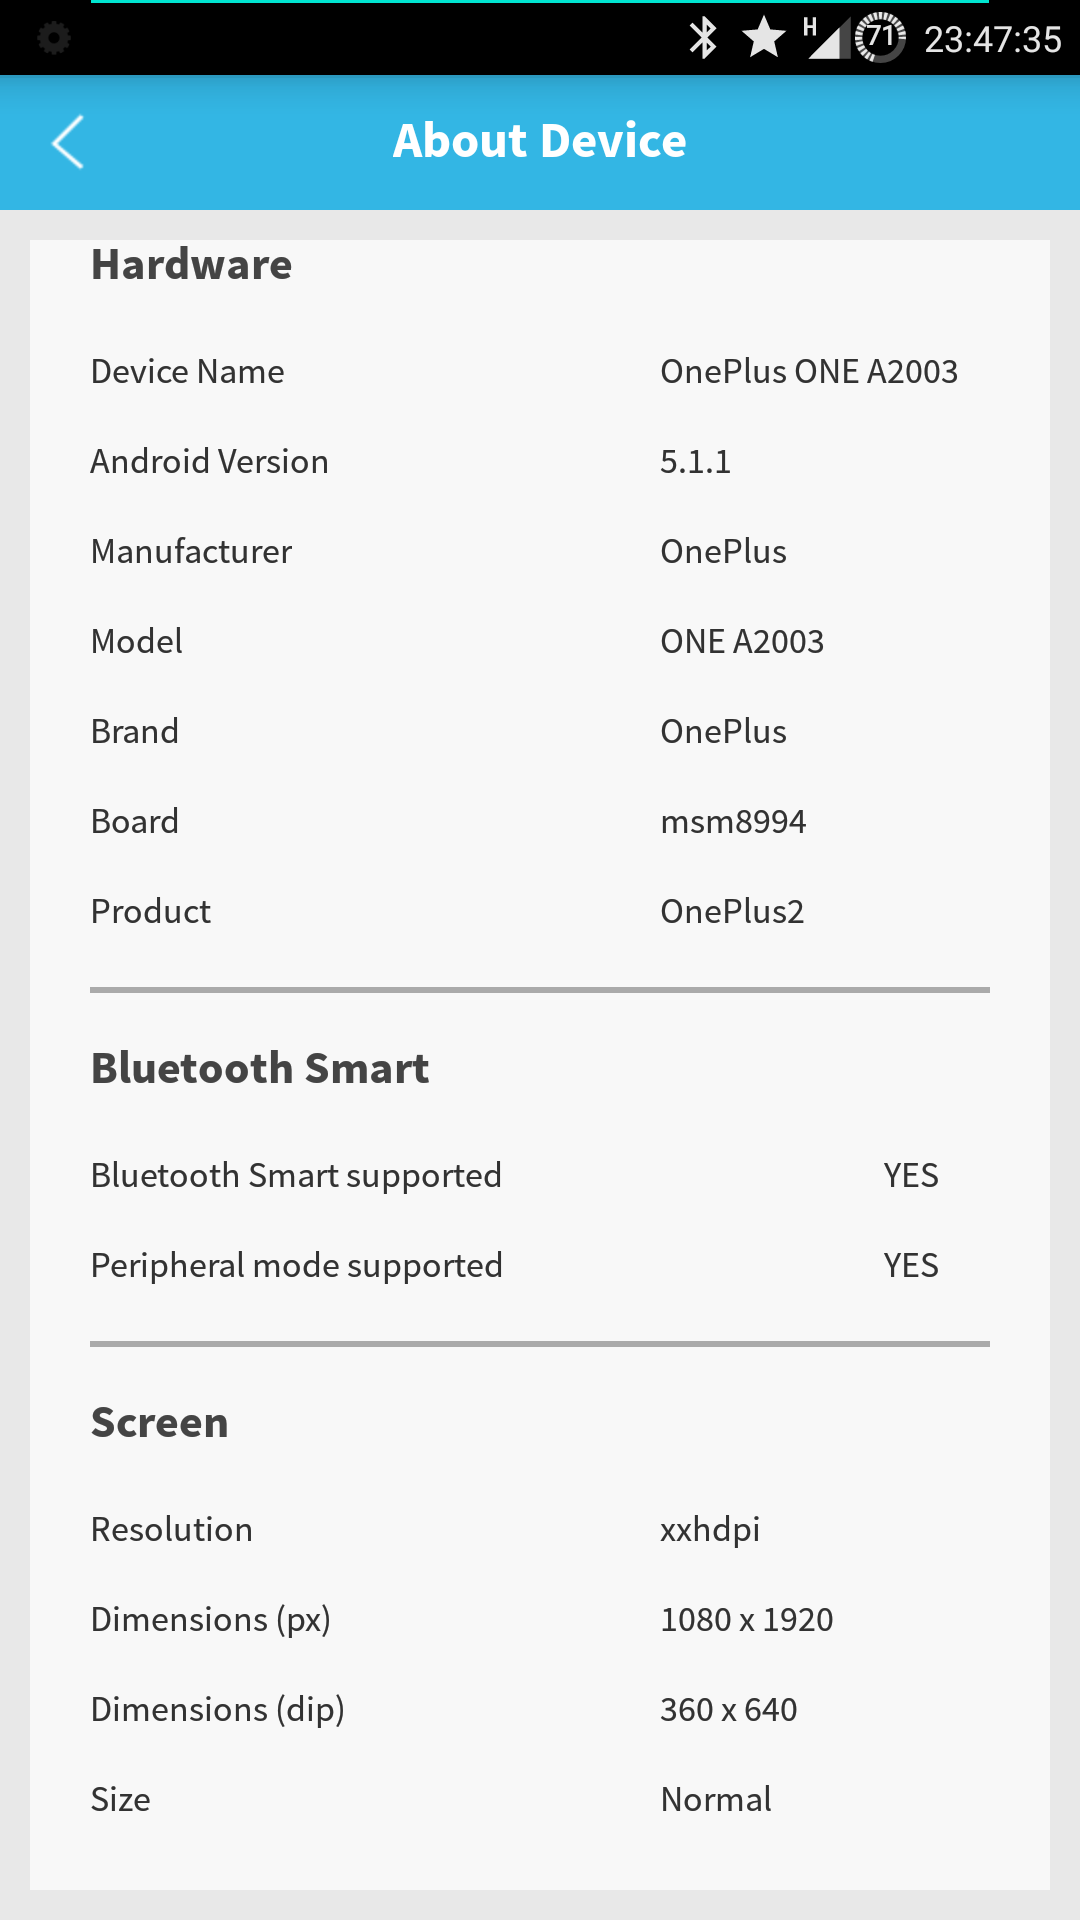 Does OPT support Bluetooth Low Energy? - OnePlus Community